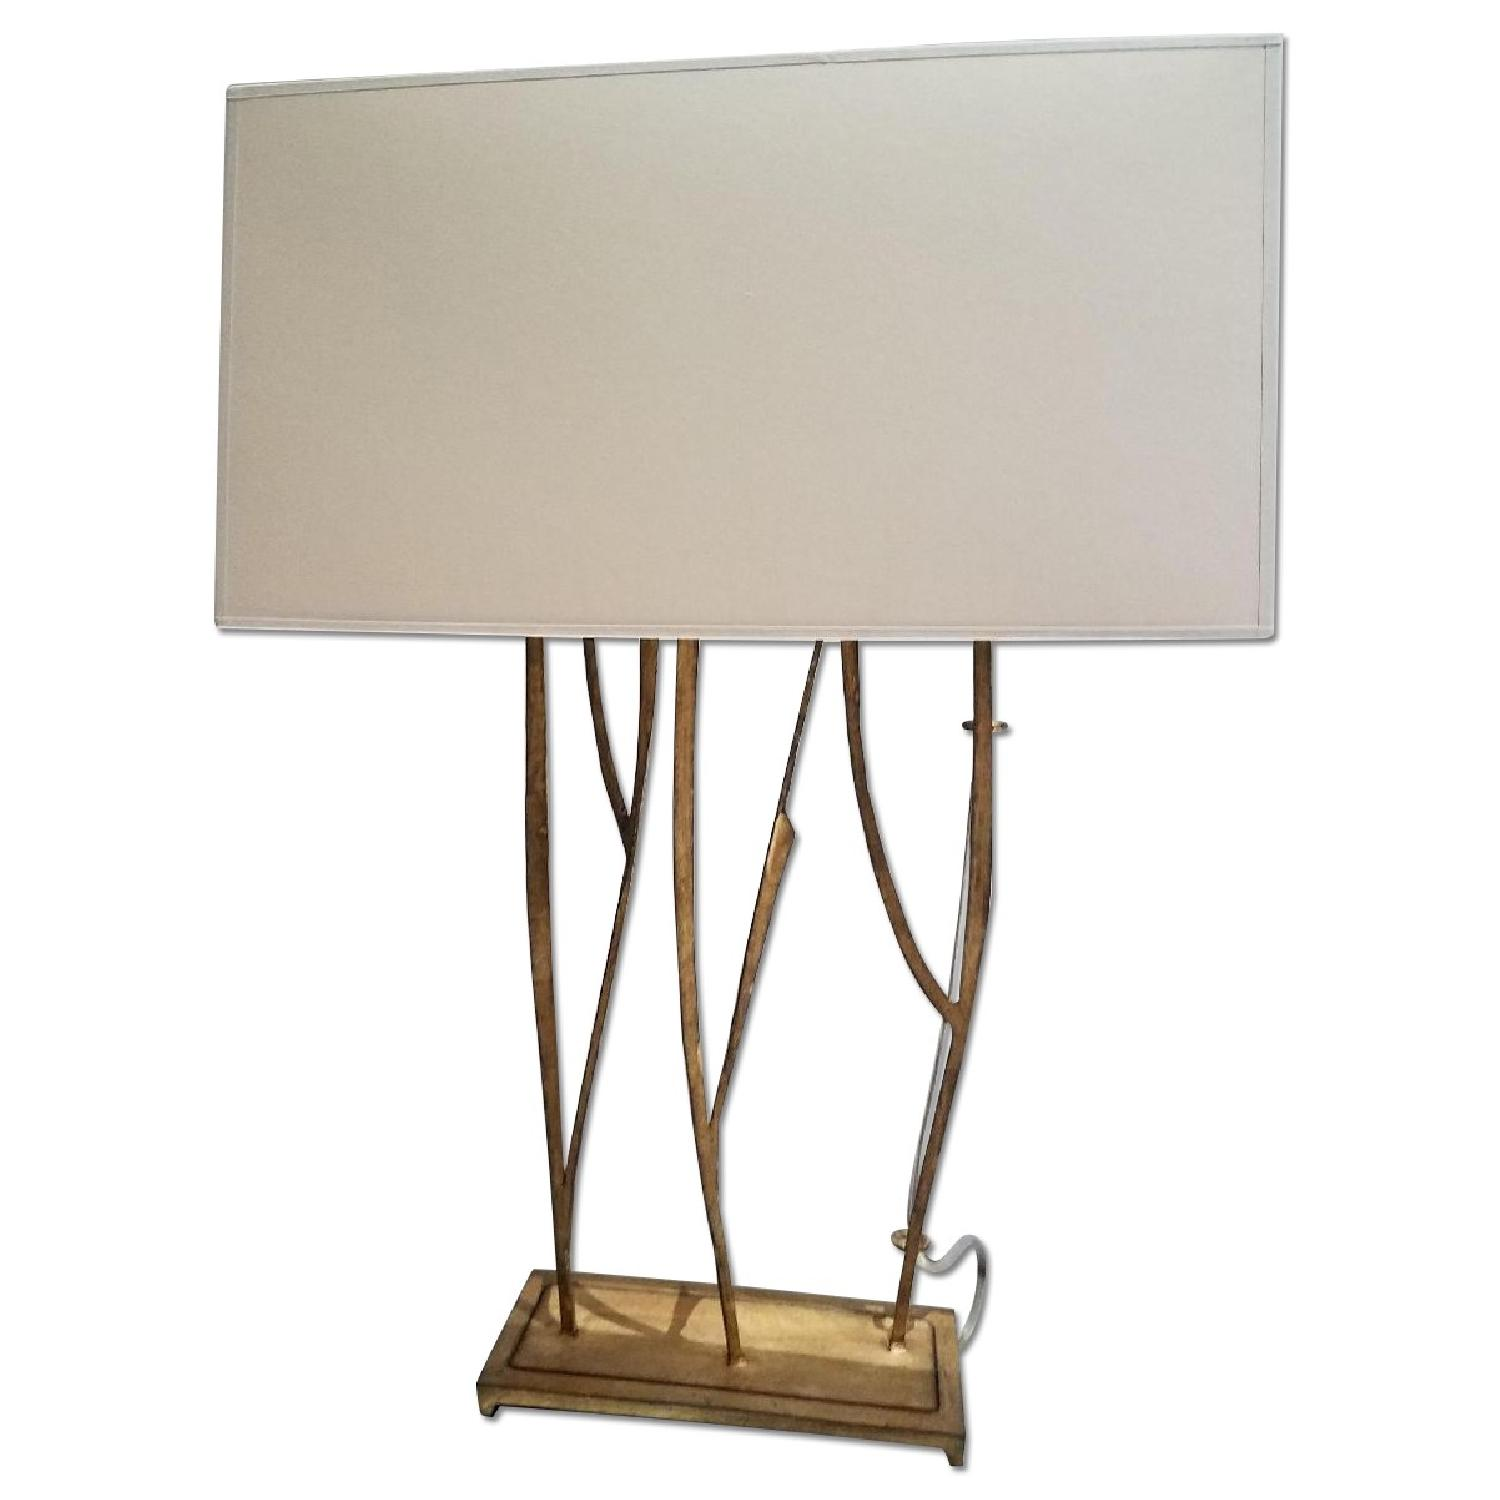 One King's Lane Aspen 3-Way Light Table Lamps - image-0